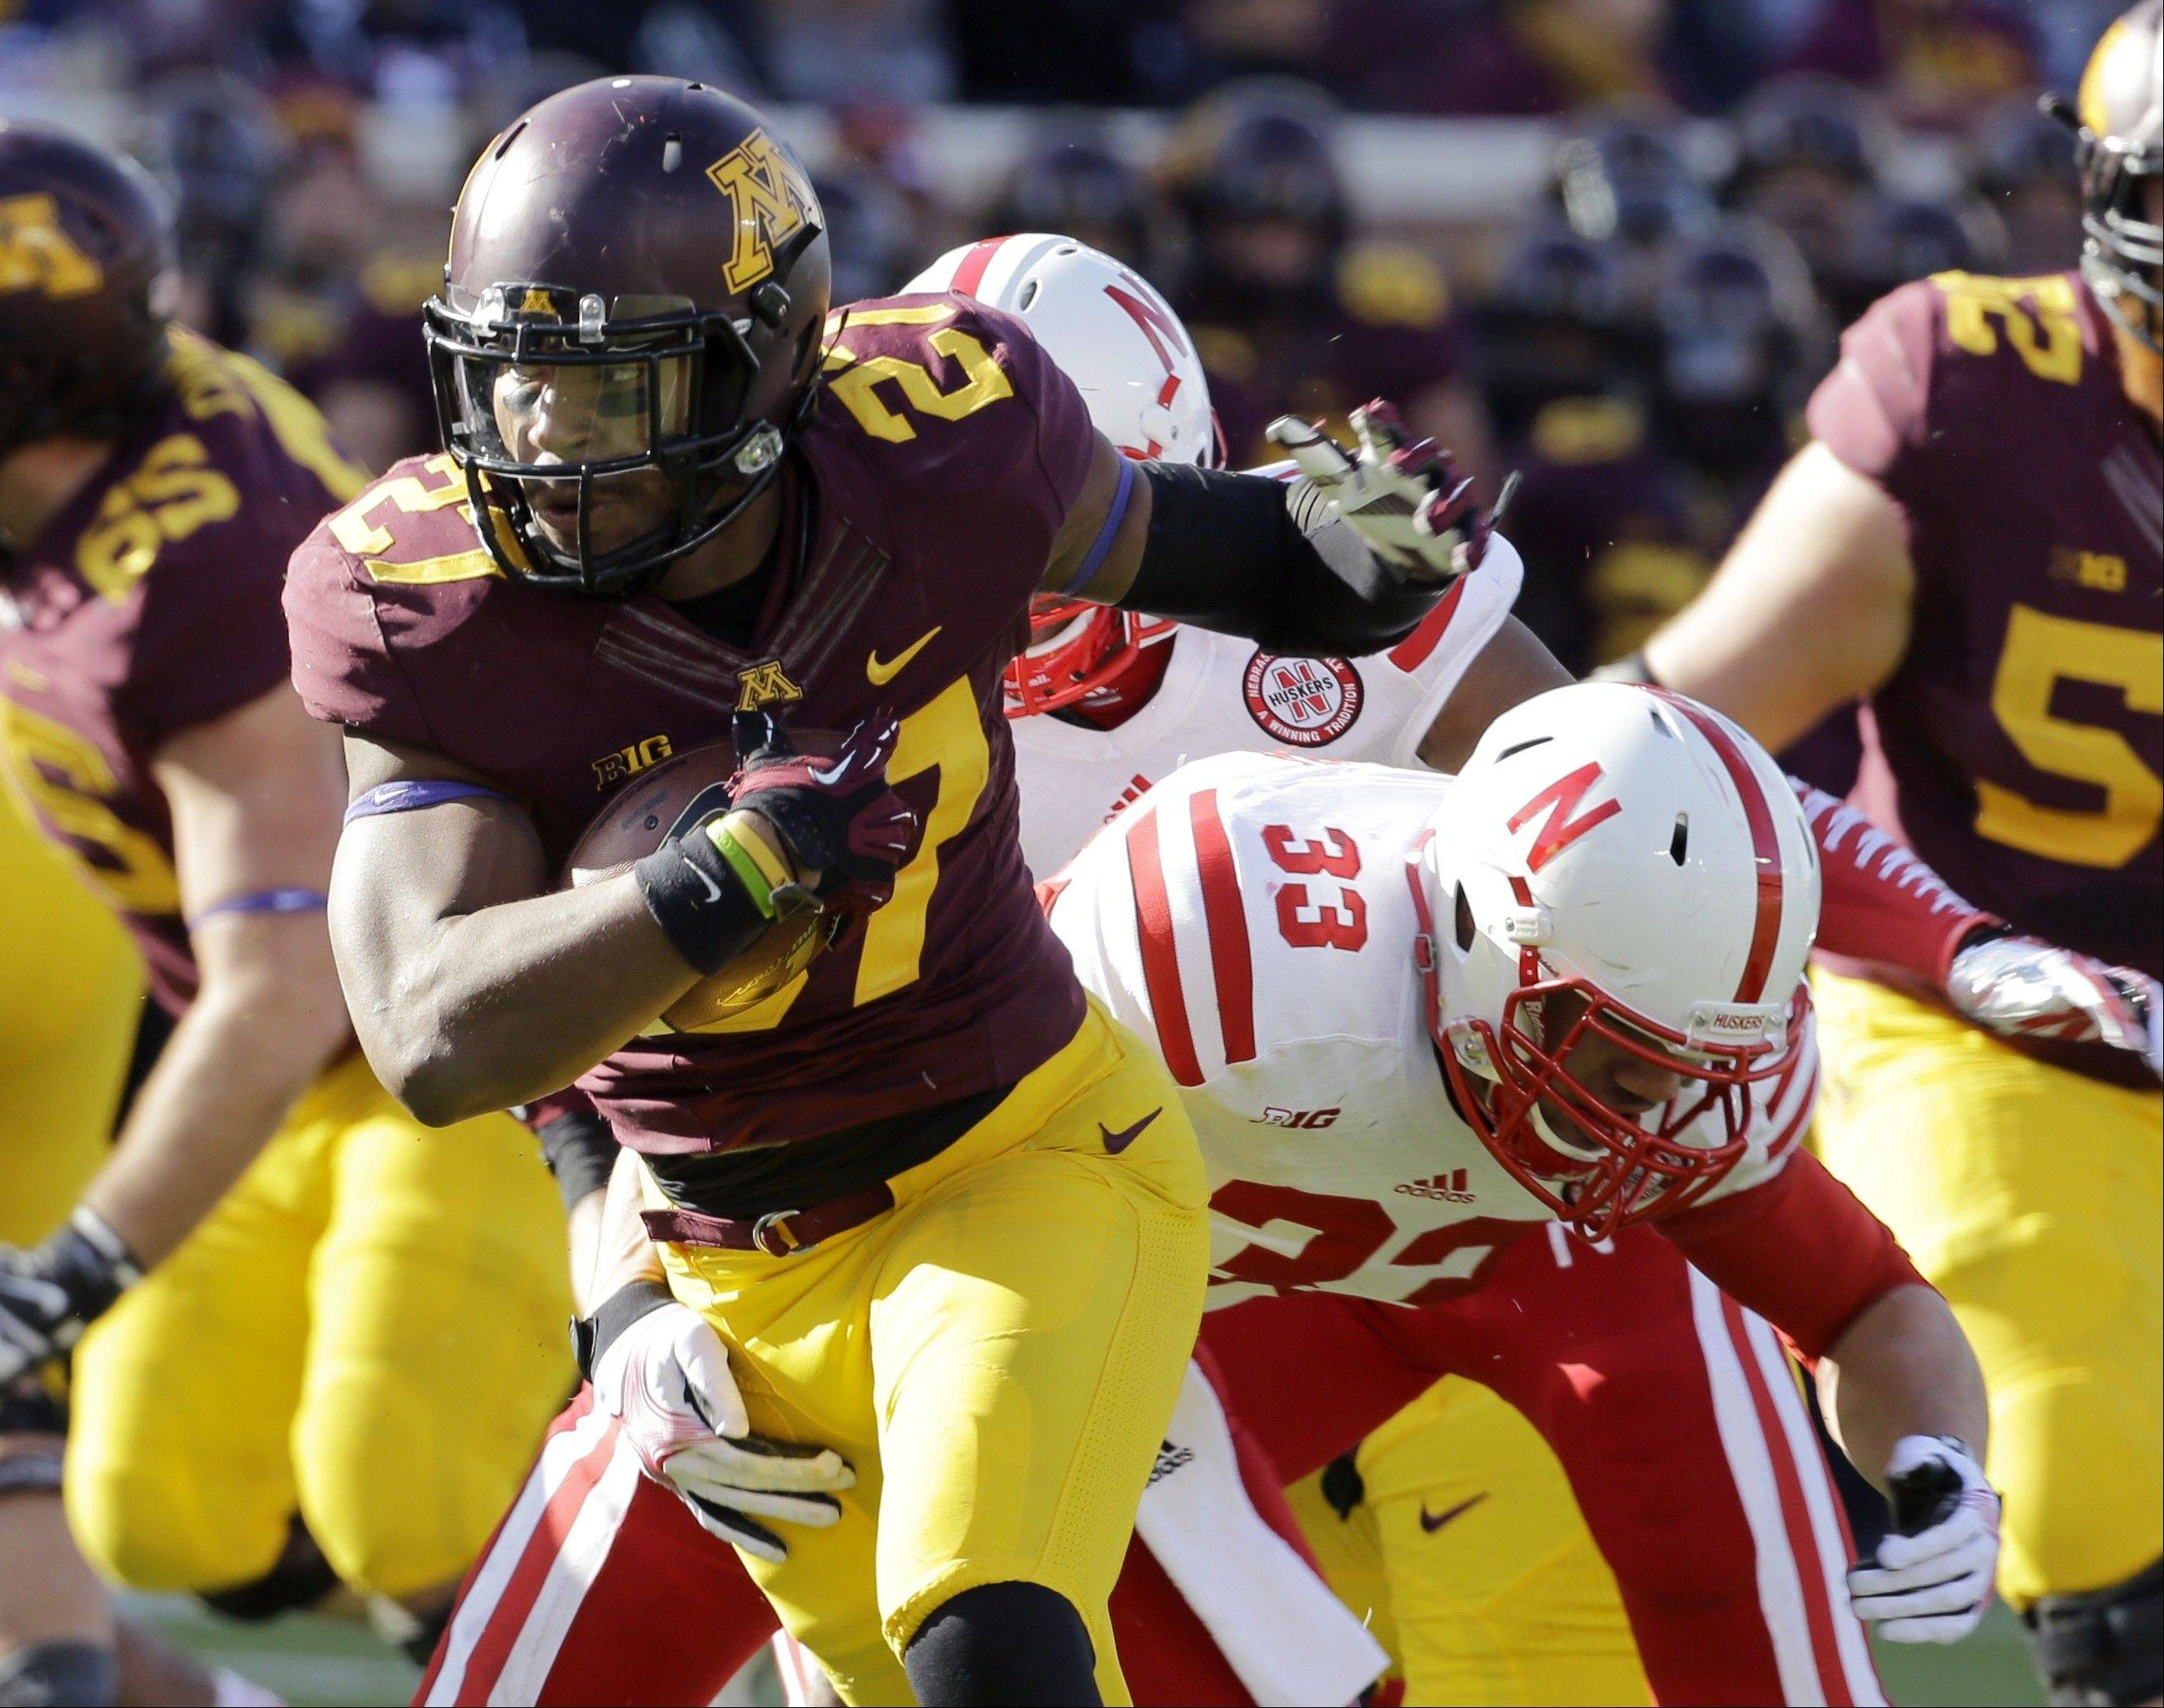 Minnesota running back David Cobb (27) evades Nebraska linebacker Jared Afalava (33) on a 7-yard gain during the first quarter of an NCAA college football game in Minneapolis Saturday, Oct. 26, 2013. (AP Photo/Ann Heisenfelt)